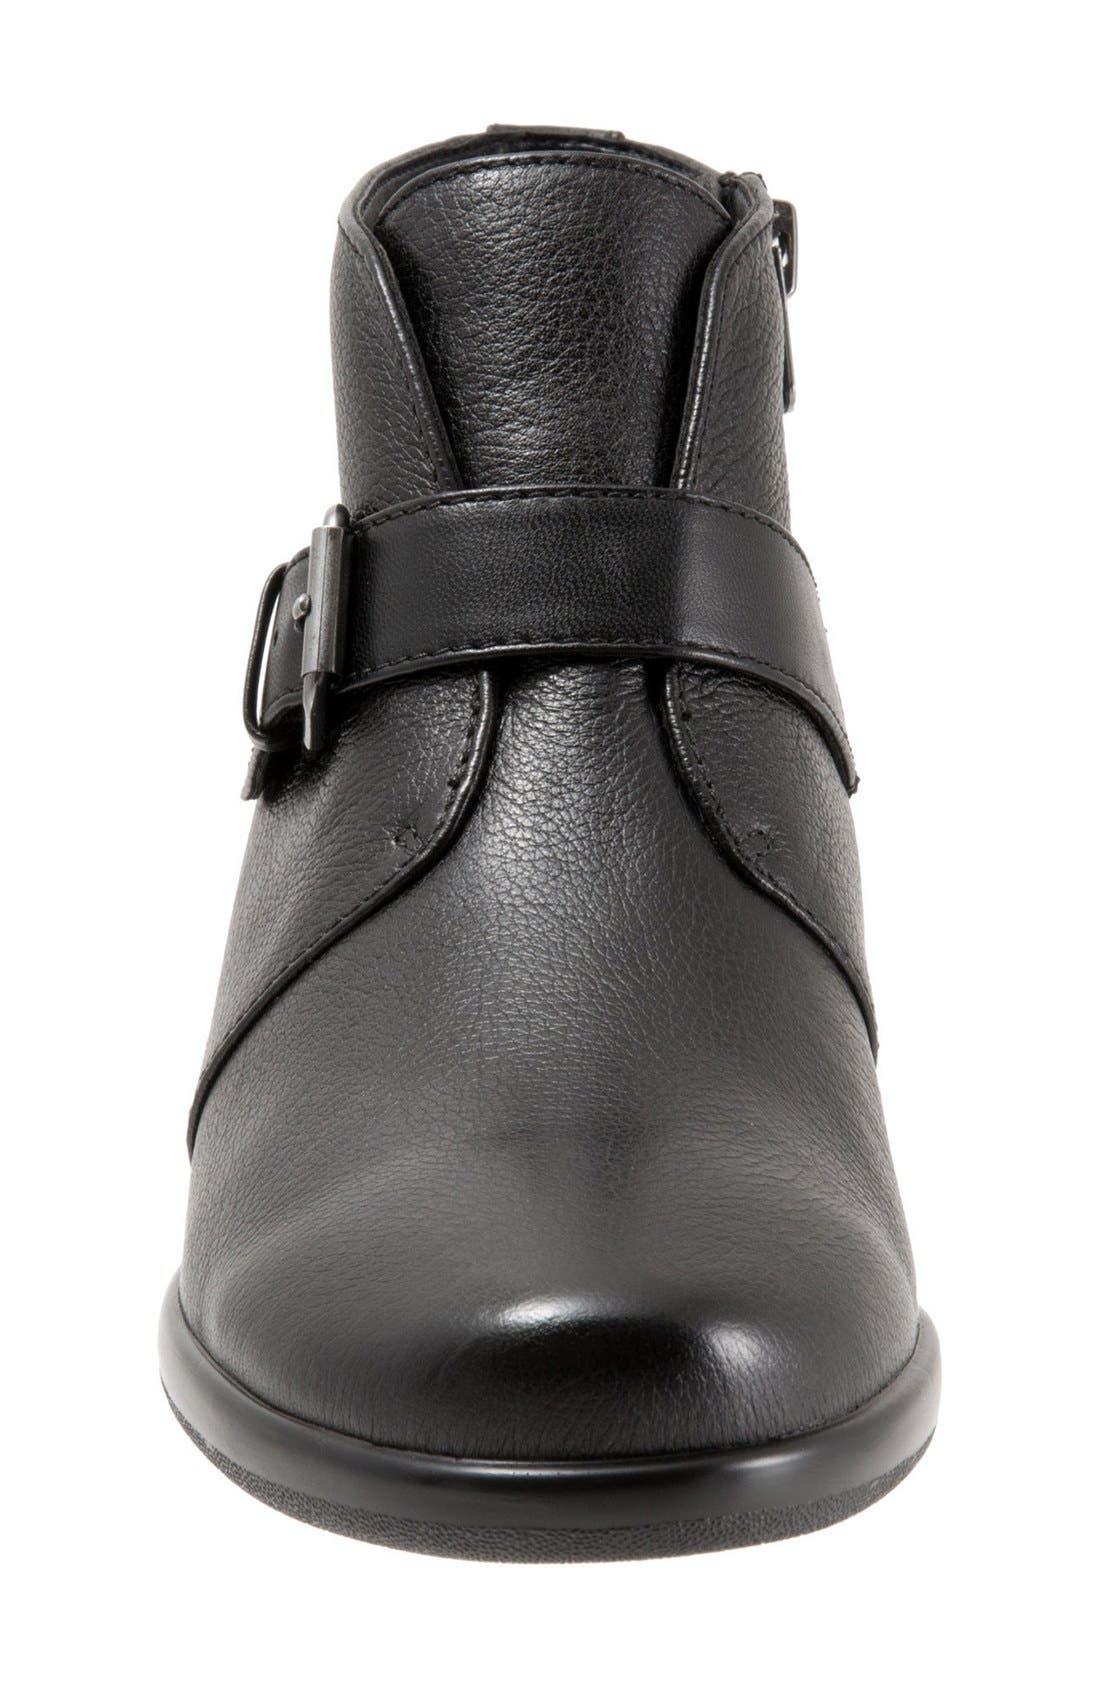 Alternate Image 3  - Trotters 'Mindy' Wedge Bootie (Women)